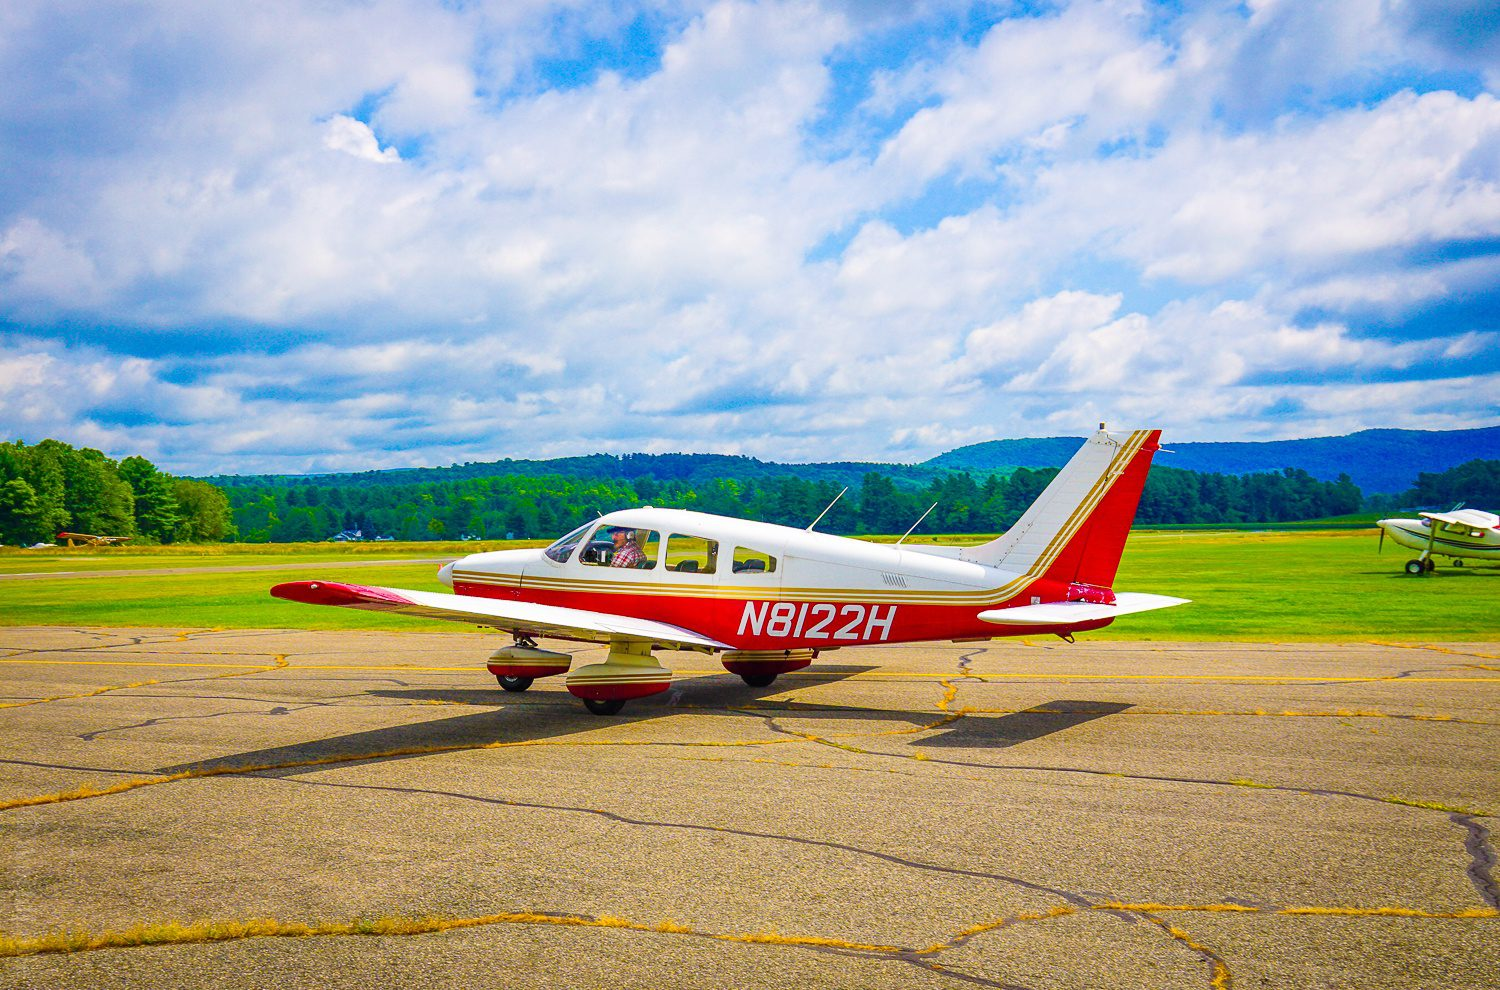 A tiny plane taking off in the Berkshires.